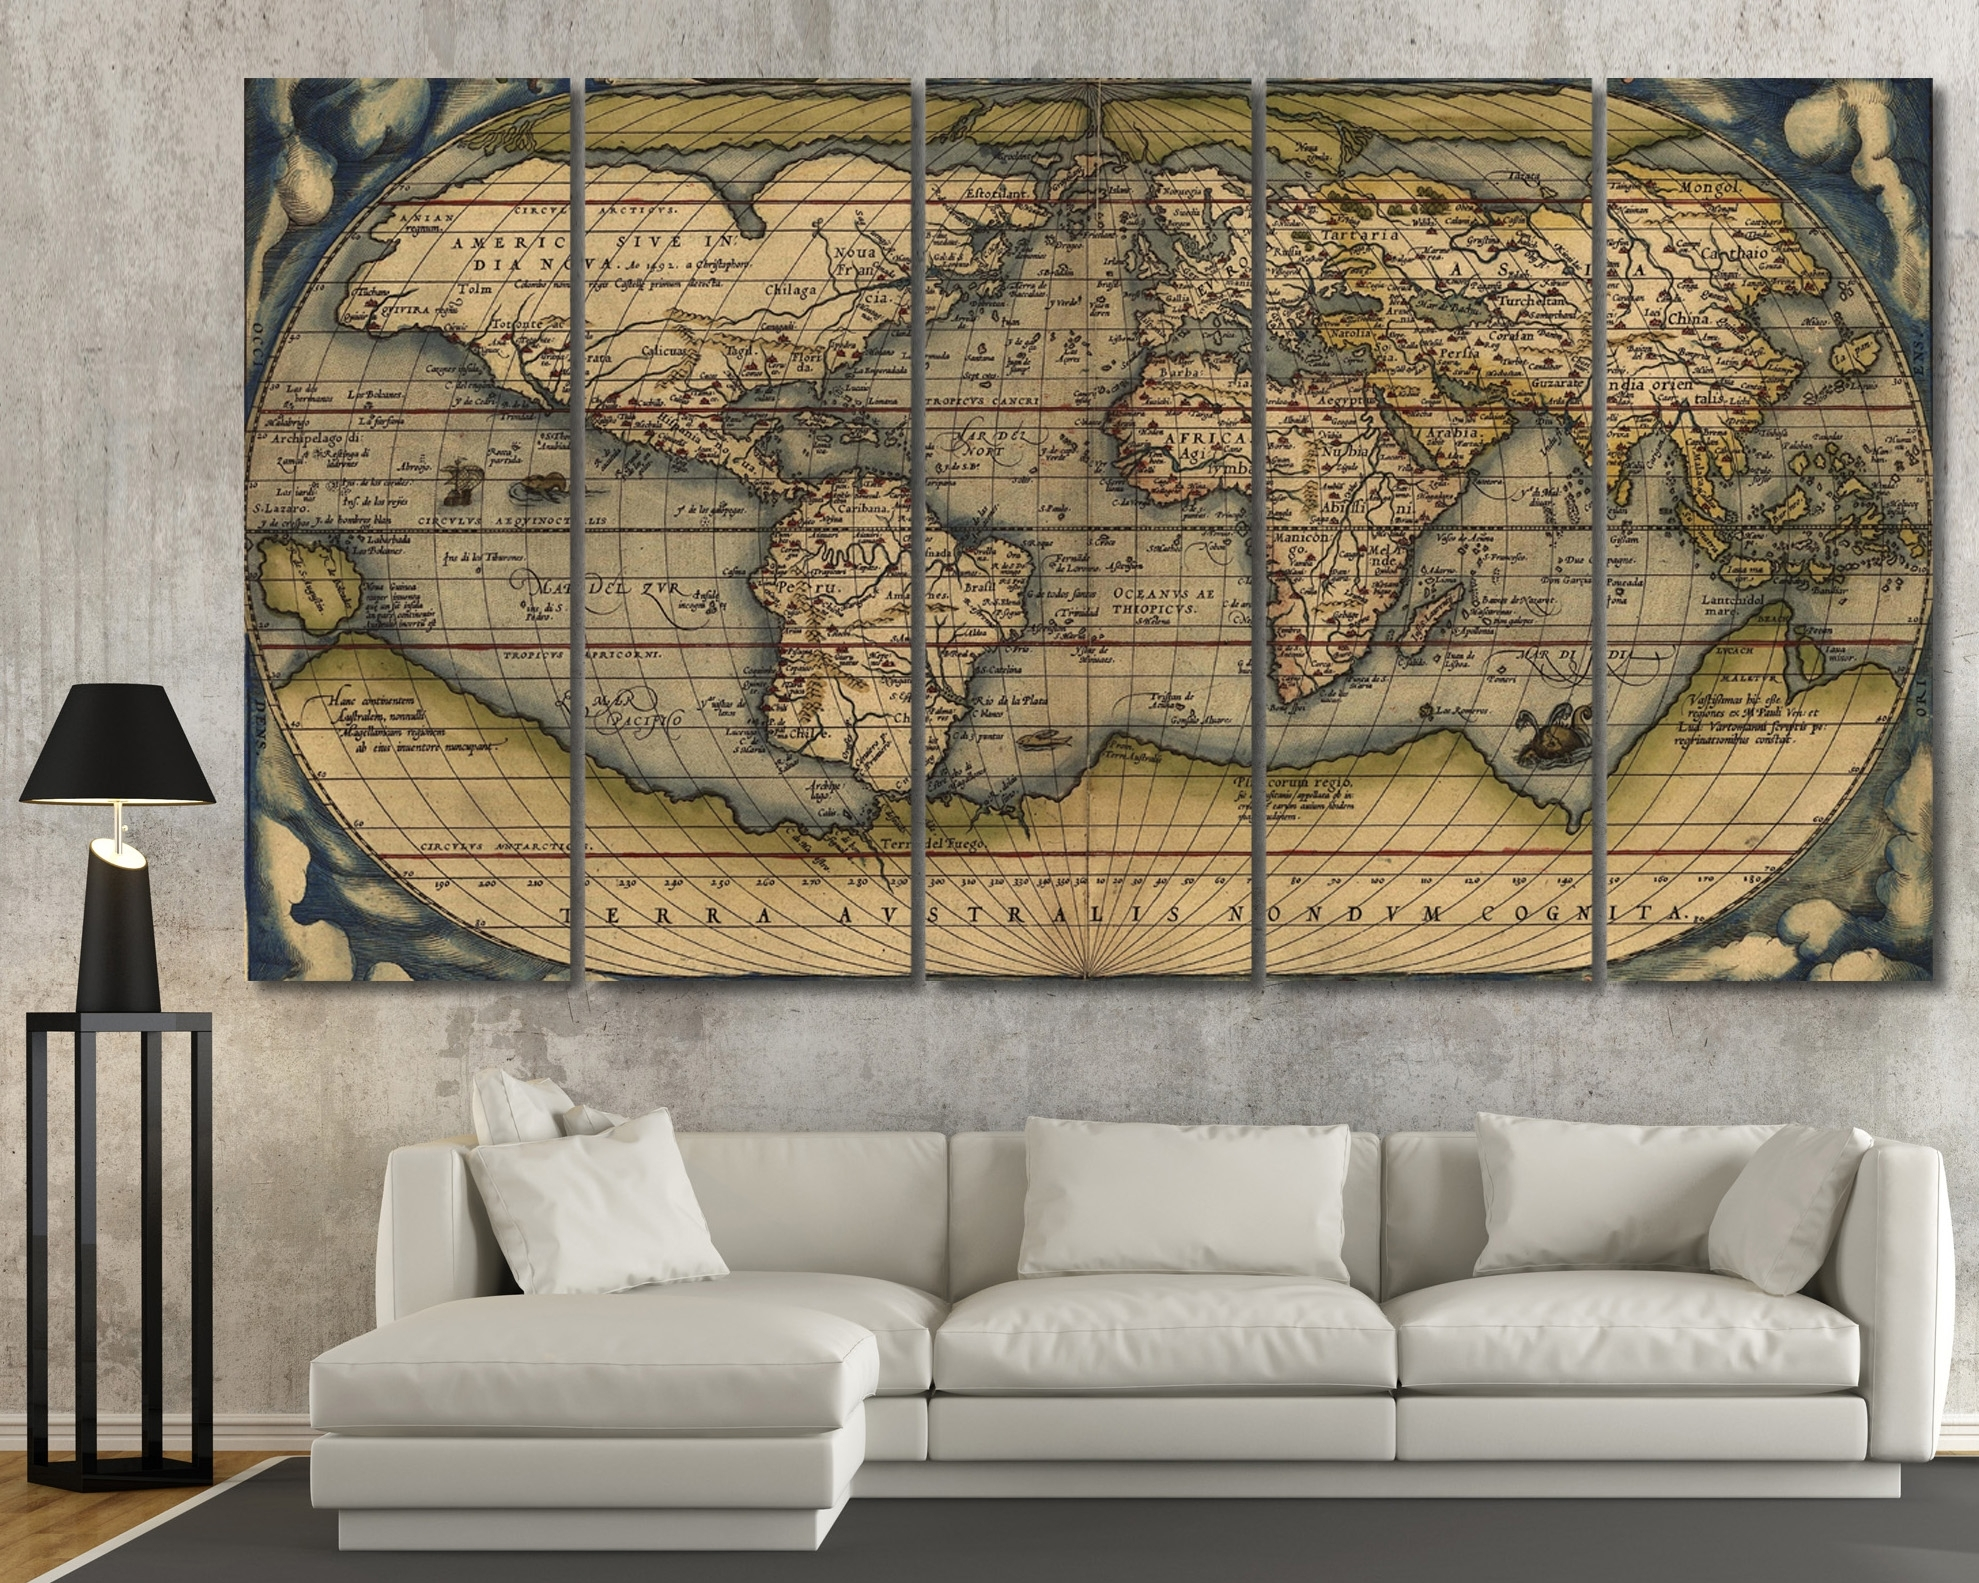 Luxury Wall Art Vintage - Home Design And Wall Decoration Ideas in Vintage Map Wall Art (Image 9 of 20)